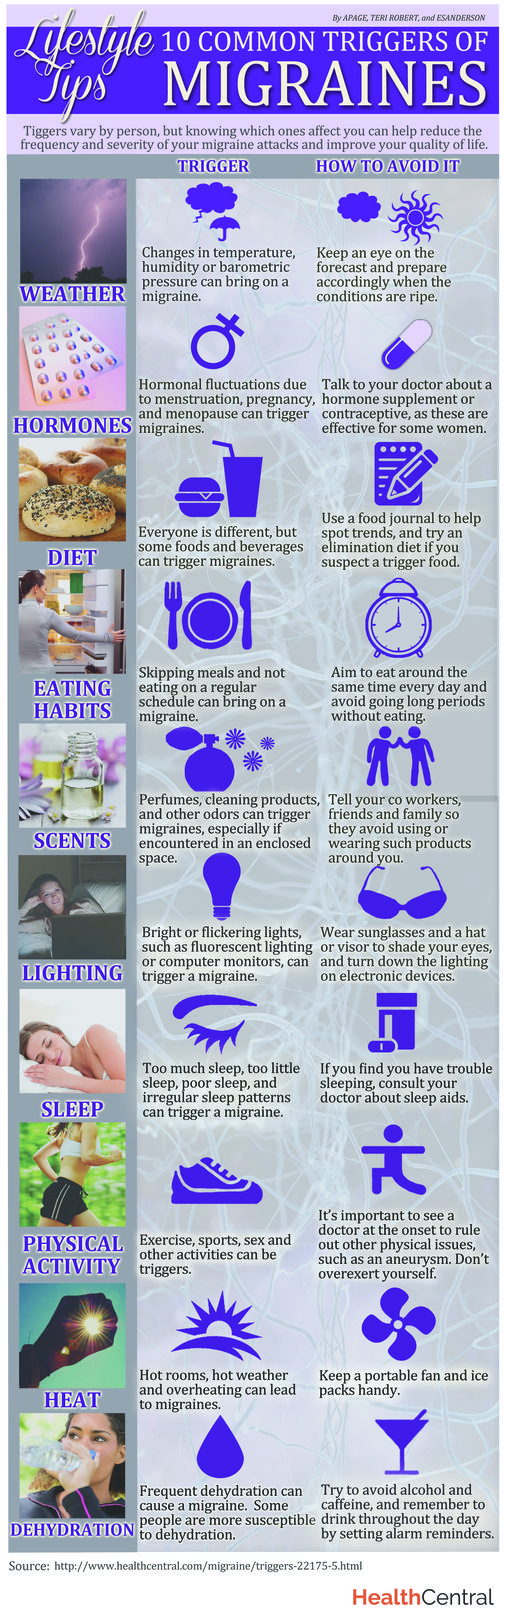 10 Common Triggers of Migraines - A HealthCentral Infographic - Migraine